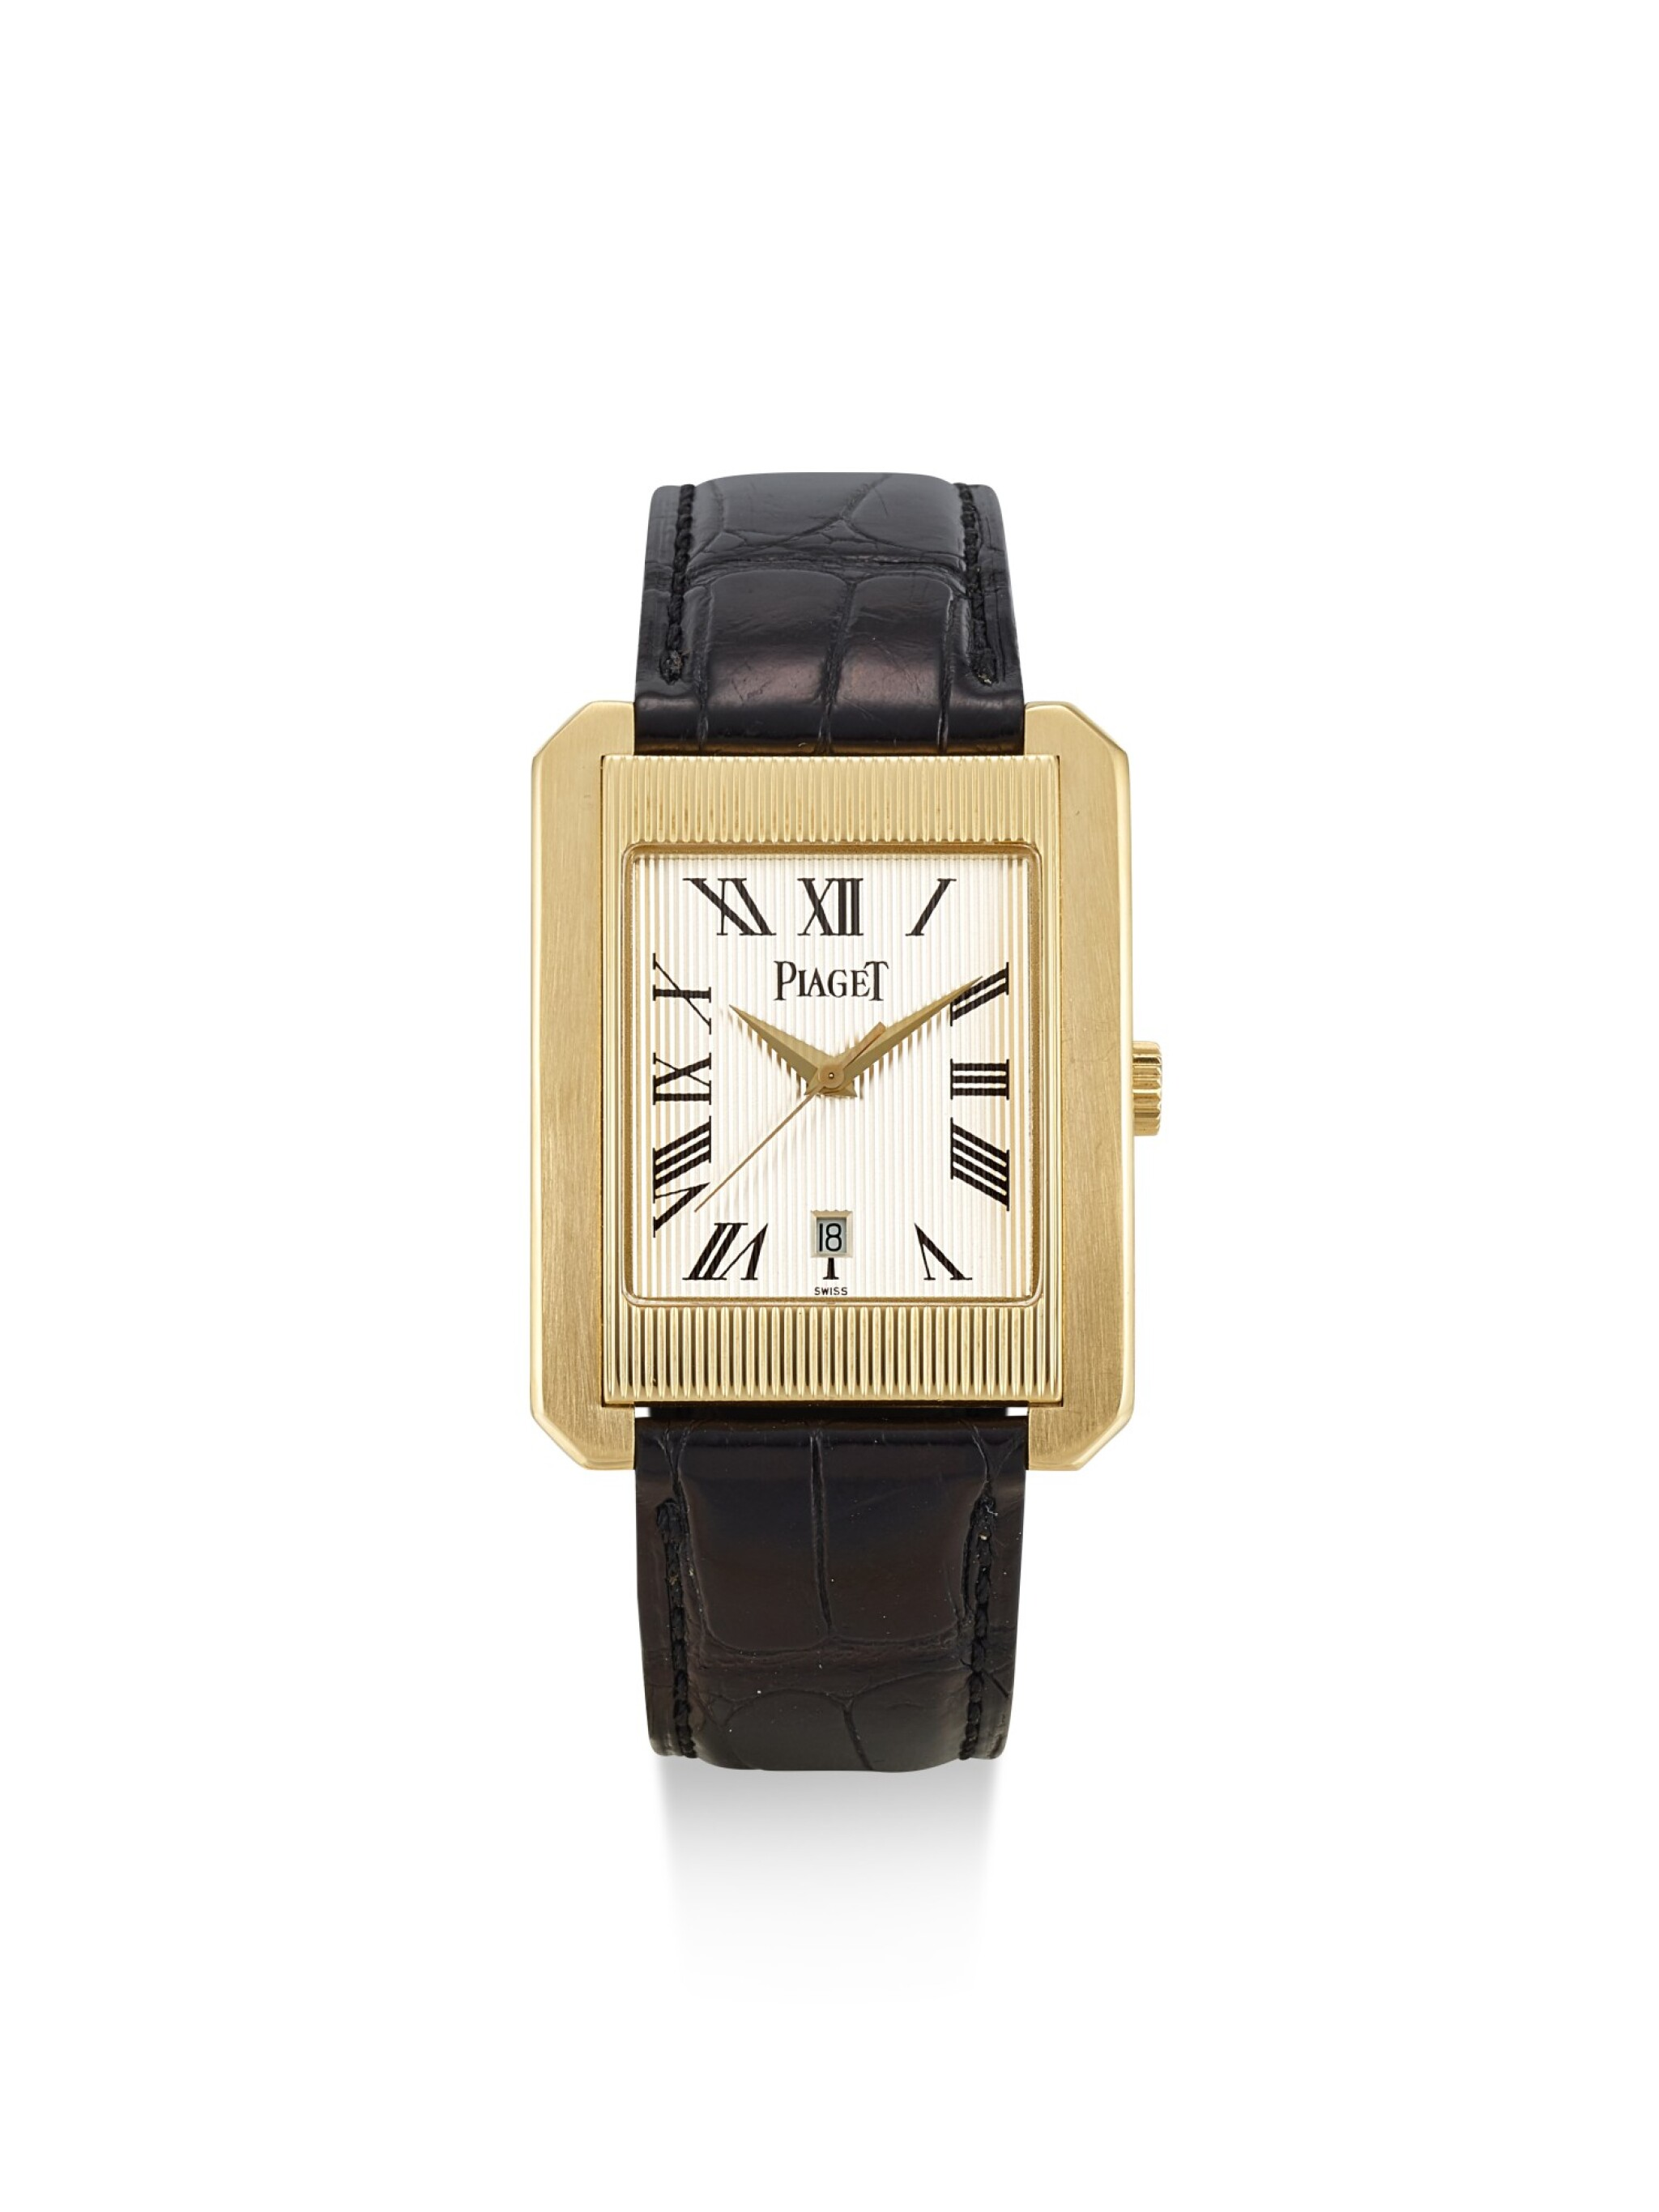 PIAGET   PROTOCOLE, REFERENCE 26100, A YELLOW GOLD WRISTWATCH WITH DATE, CIRCA 2000